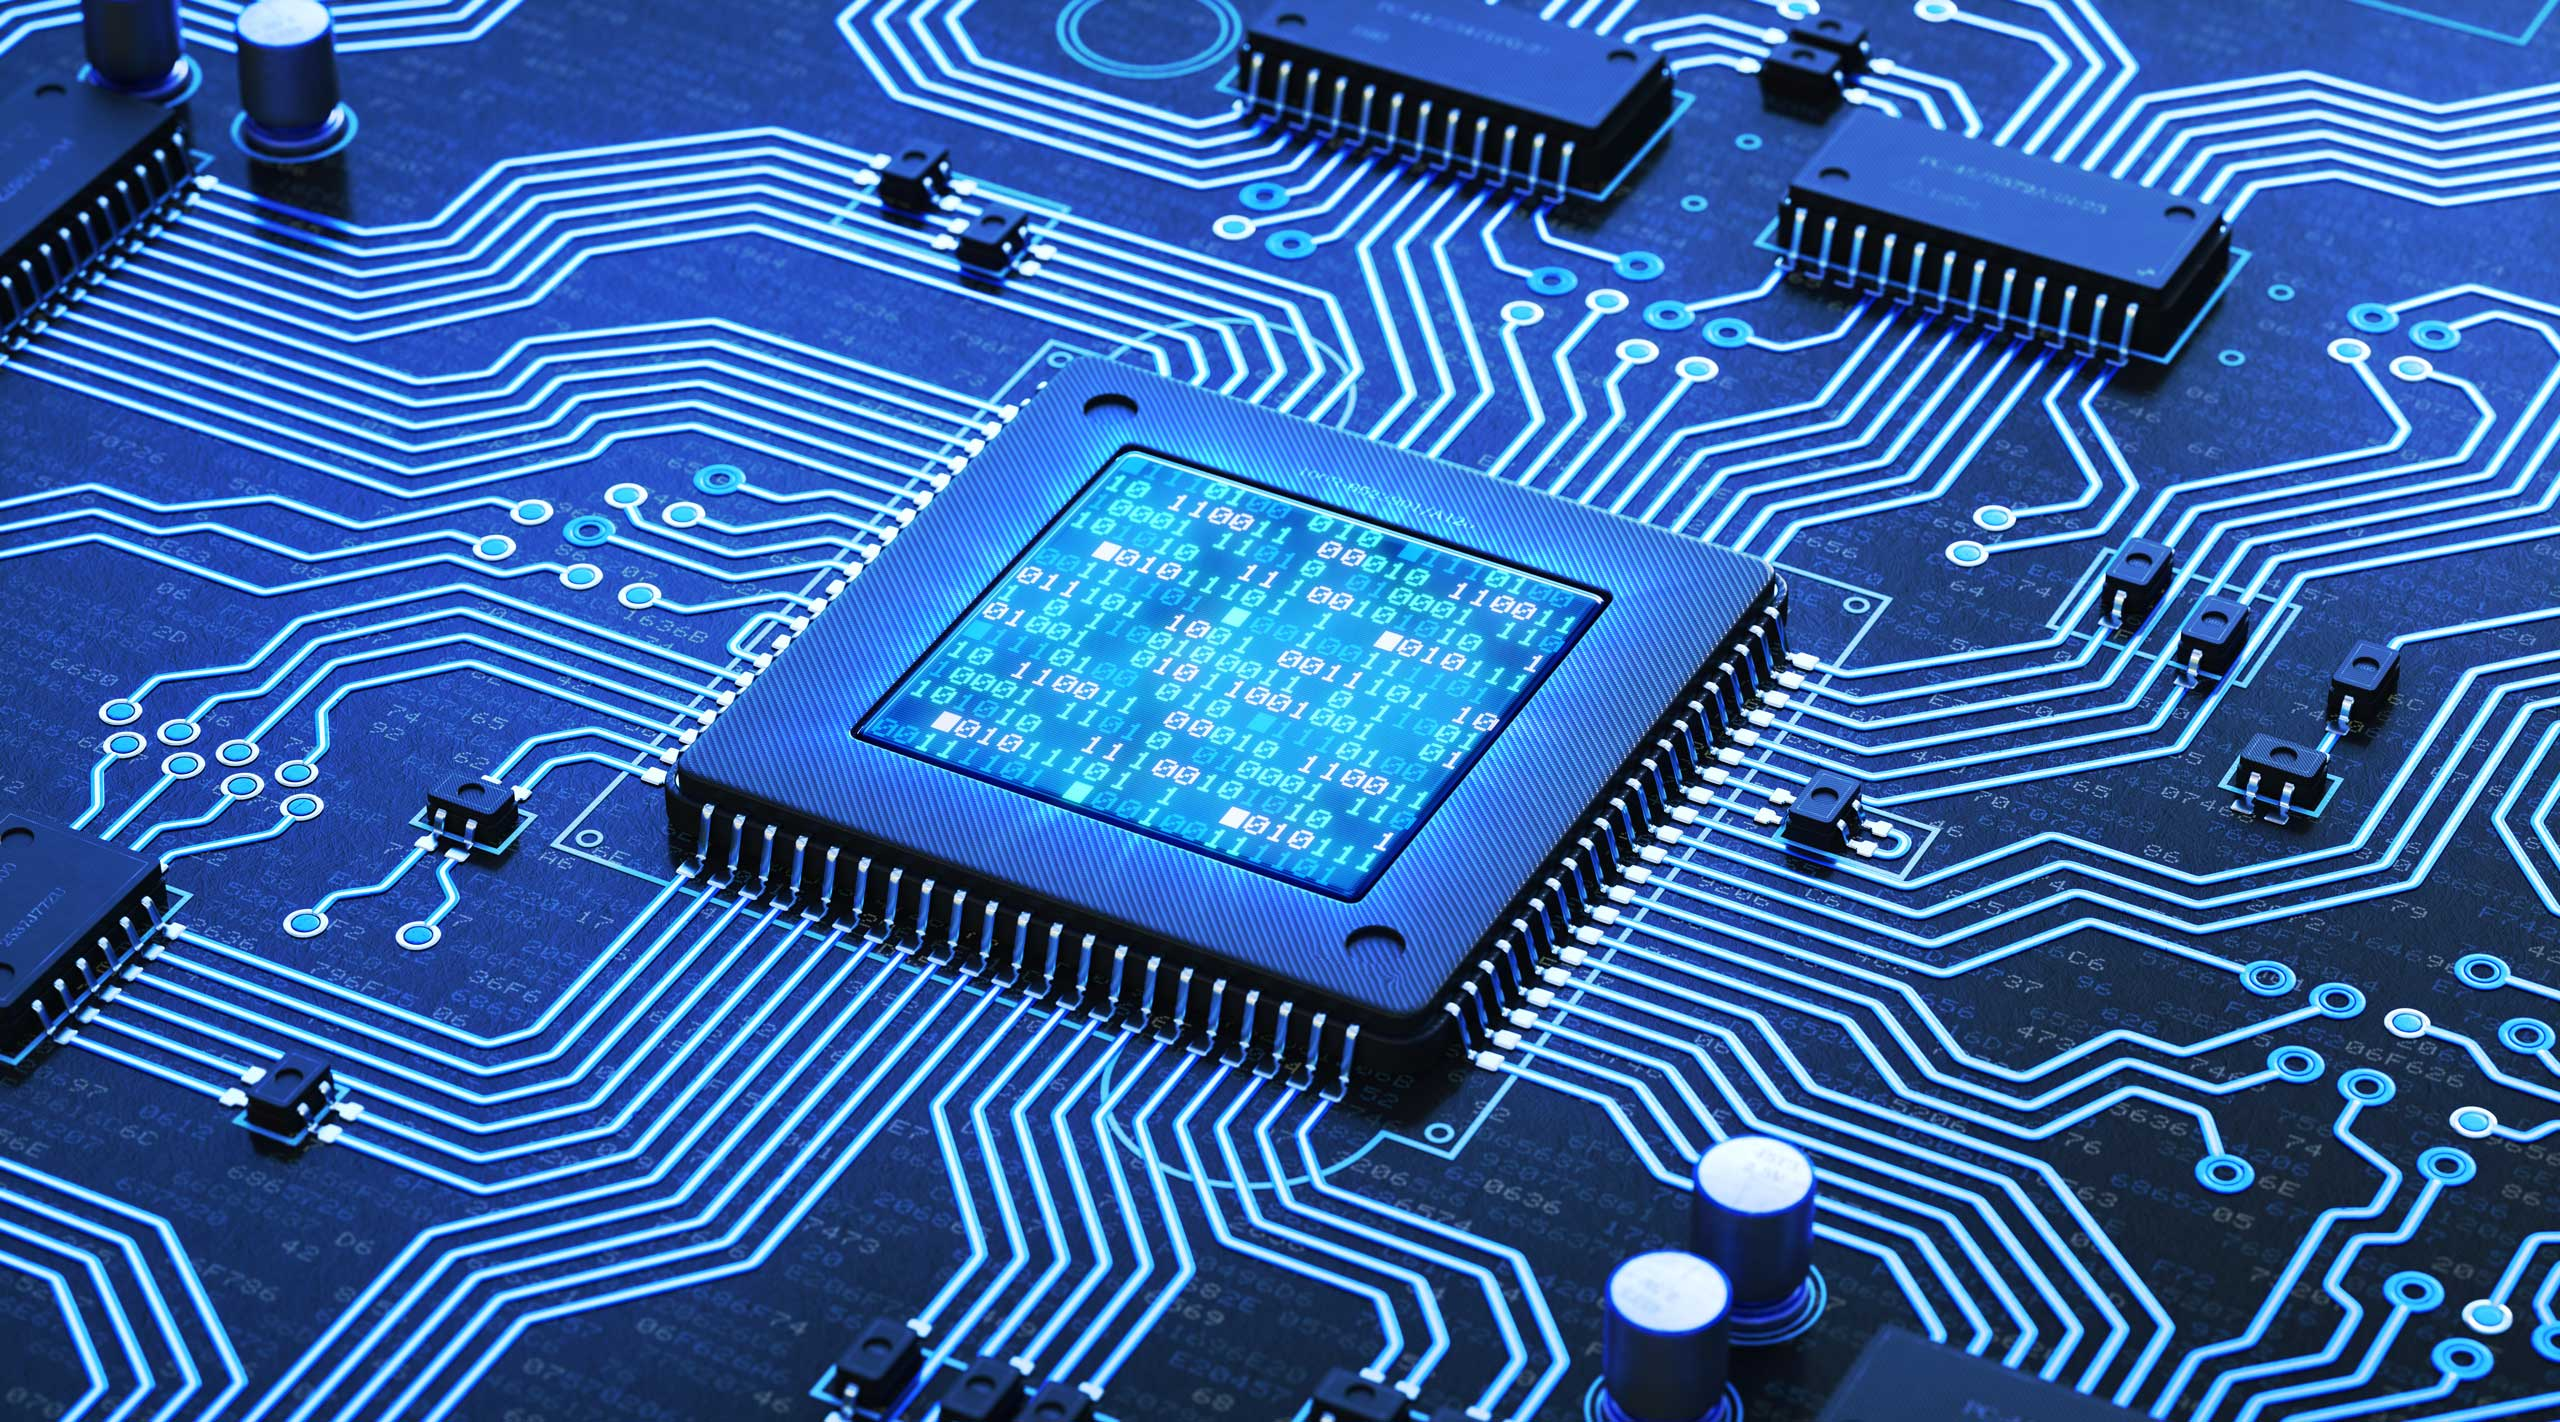 illustration of a microchip in a computer system